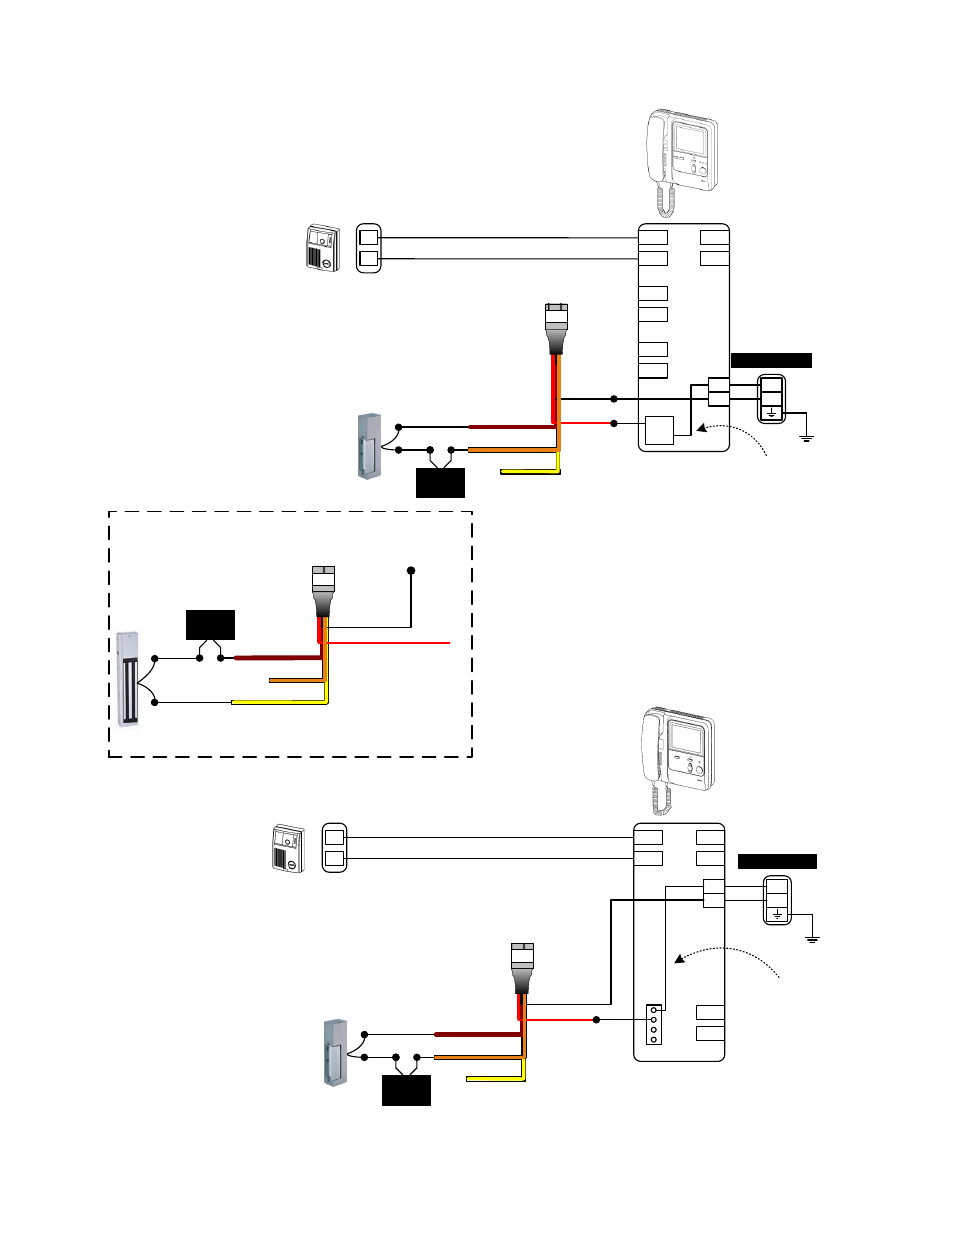 Wiring Diagrams  Cont   Kb  U0026 Kc System Wiring  Electric Strike Wiring Method  Com N  C Magnetic